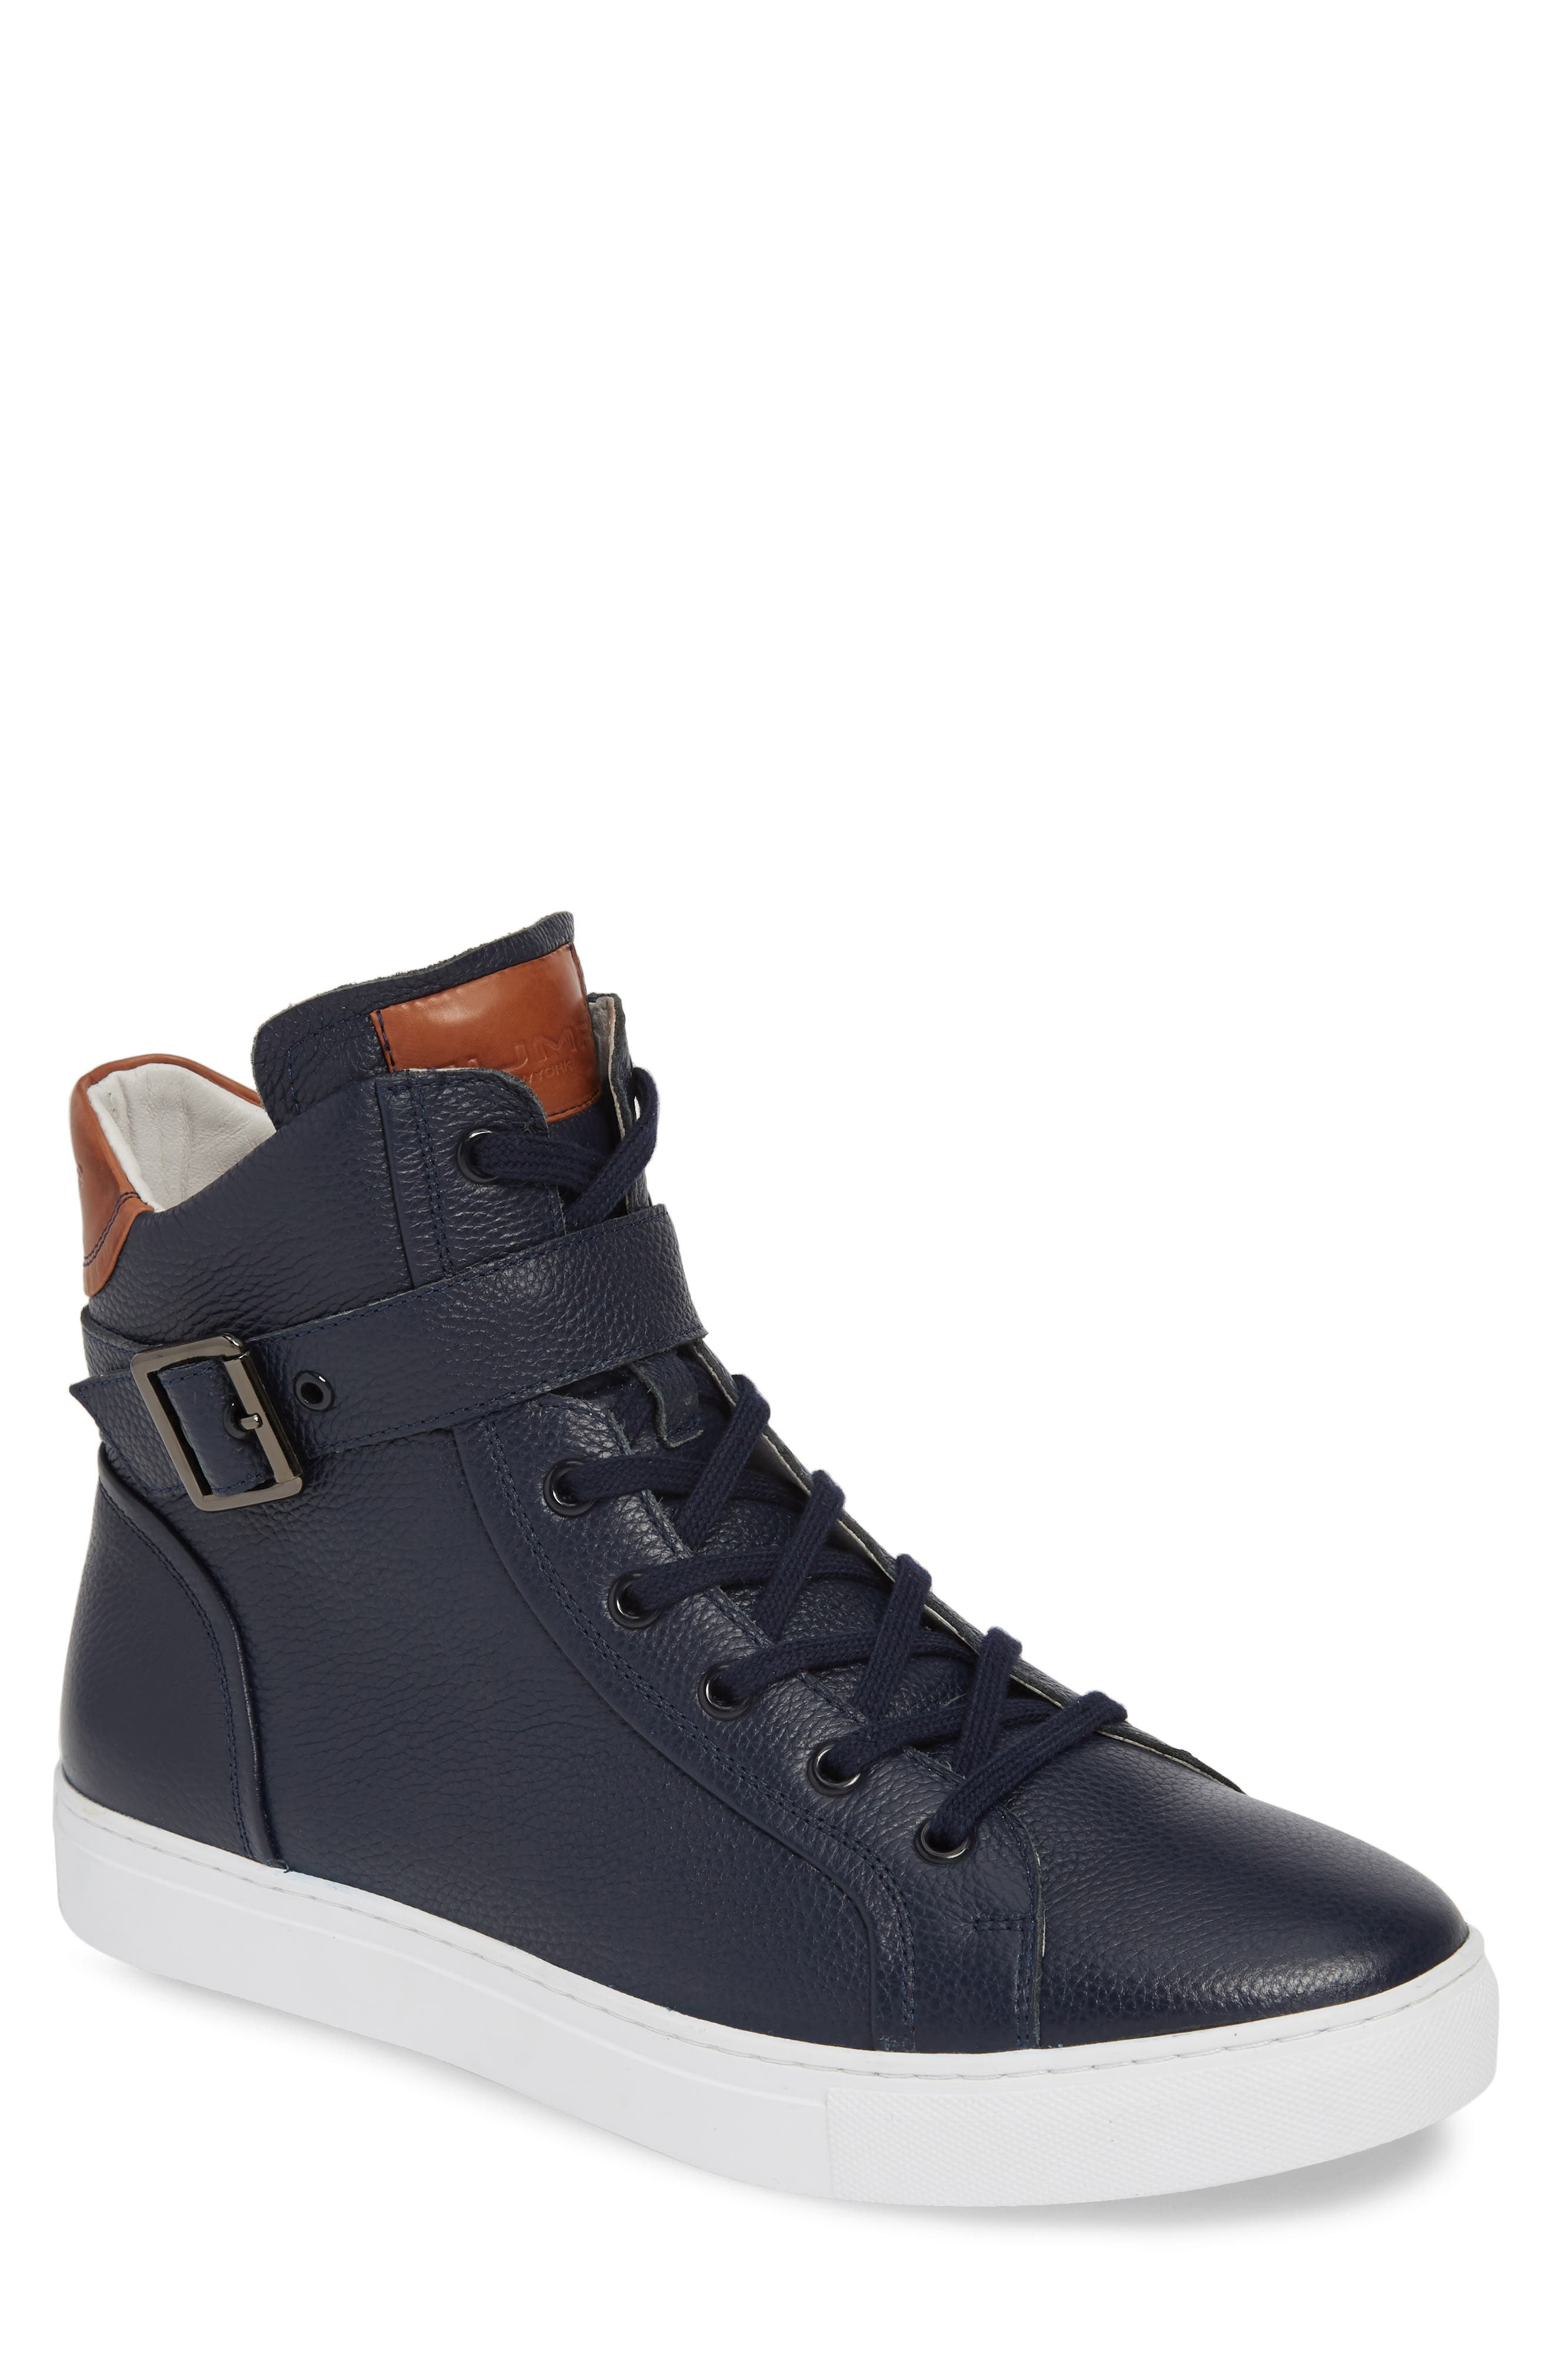 Image of JUMP Bloke Leather High Top Sneaker